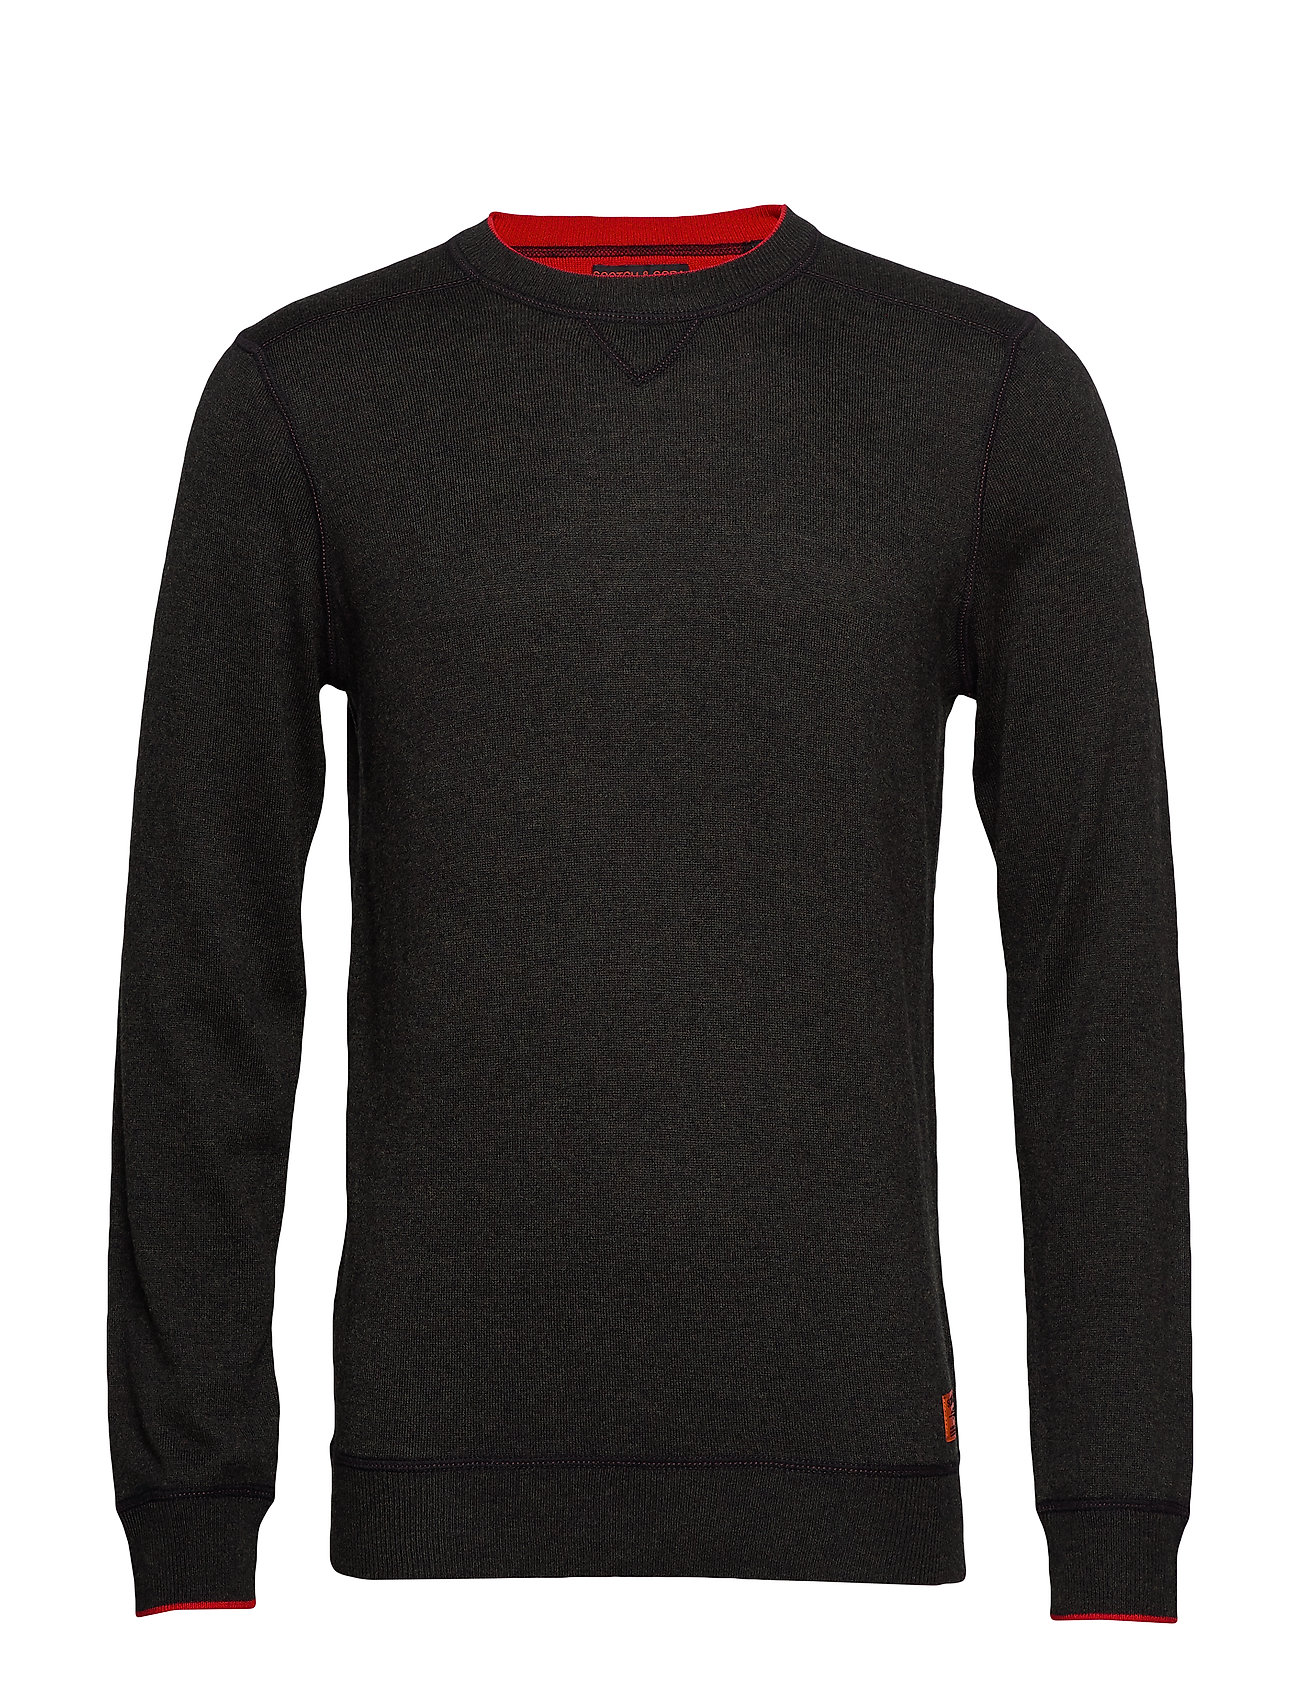 Scotch & Soda Crewneck pull in sweatshirt styling with contrast detail - MILITARY MELANGE